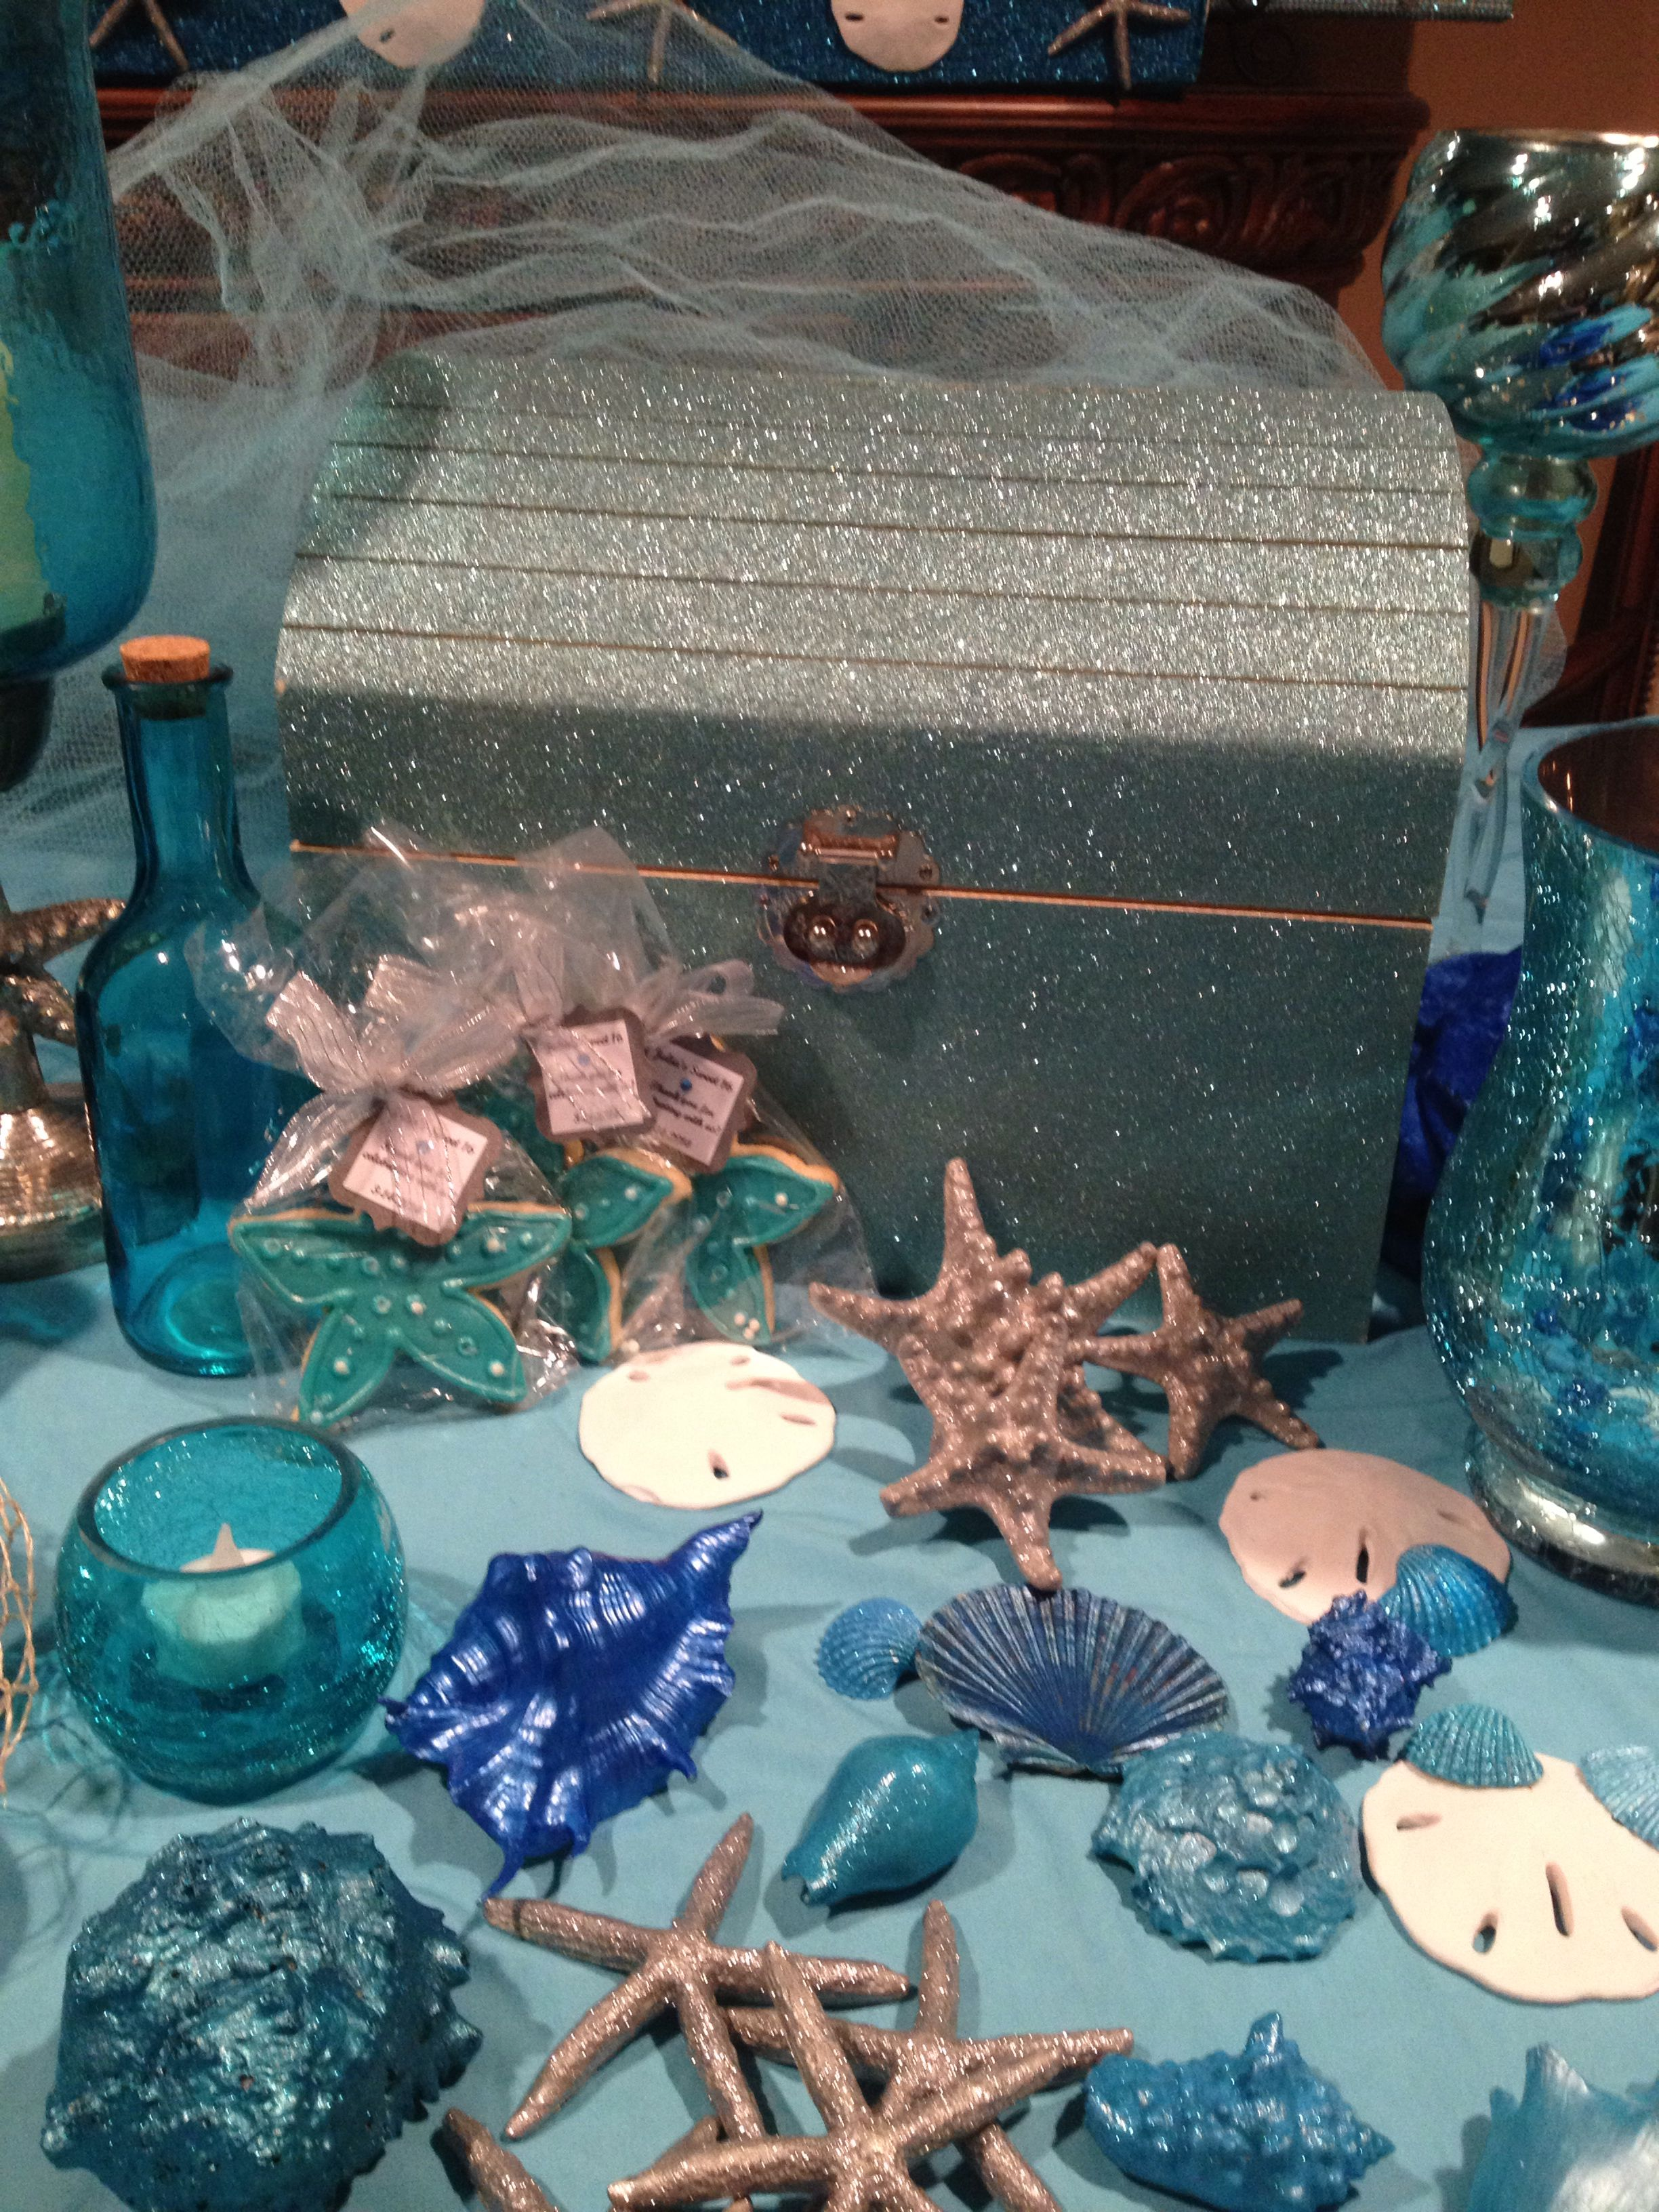 Mermaid Gift Ideas Decorations For My Daughter 39s Under The Sea Sweet 16